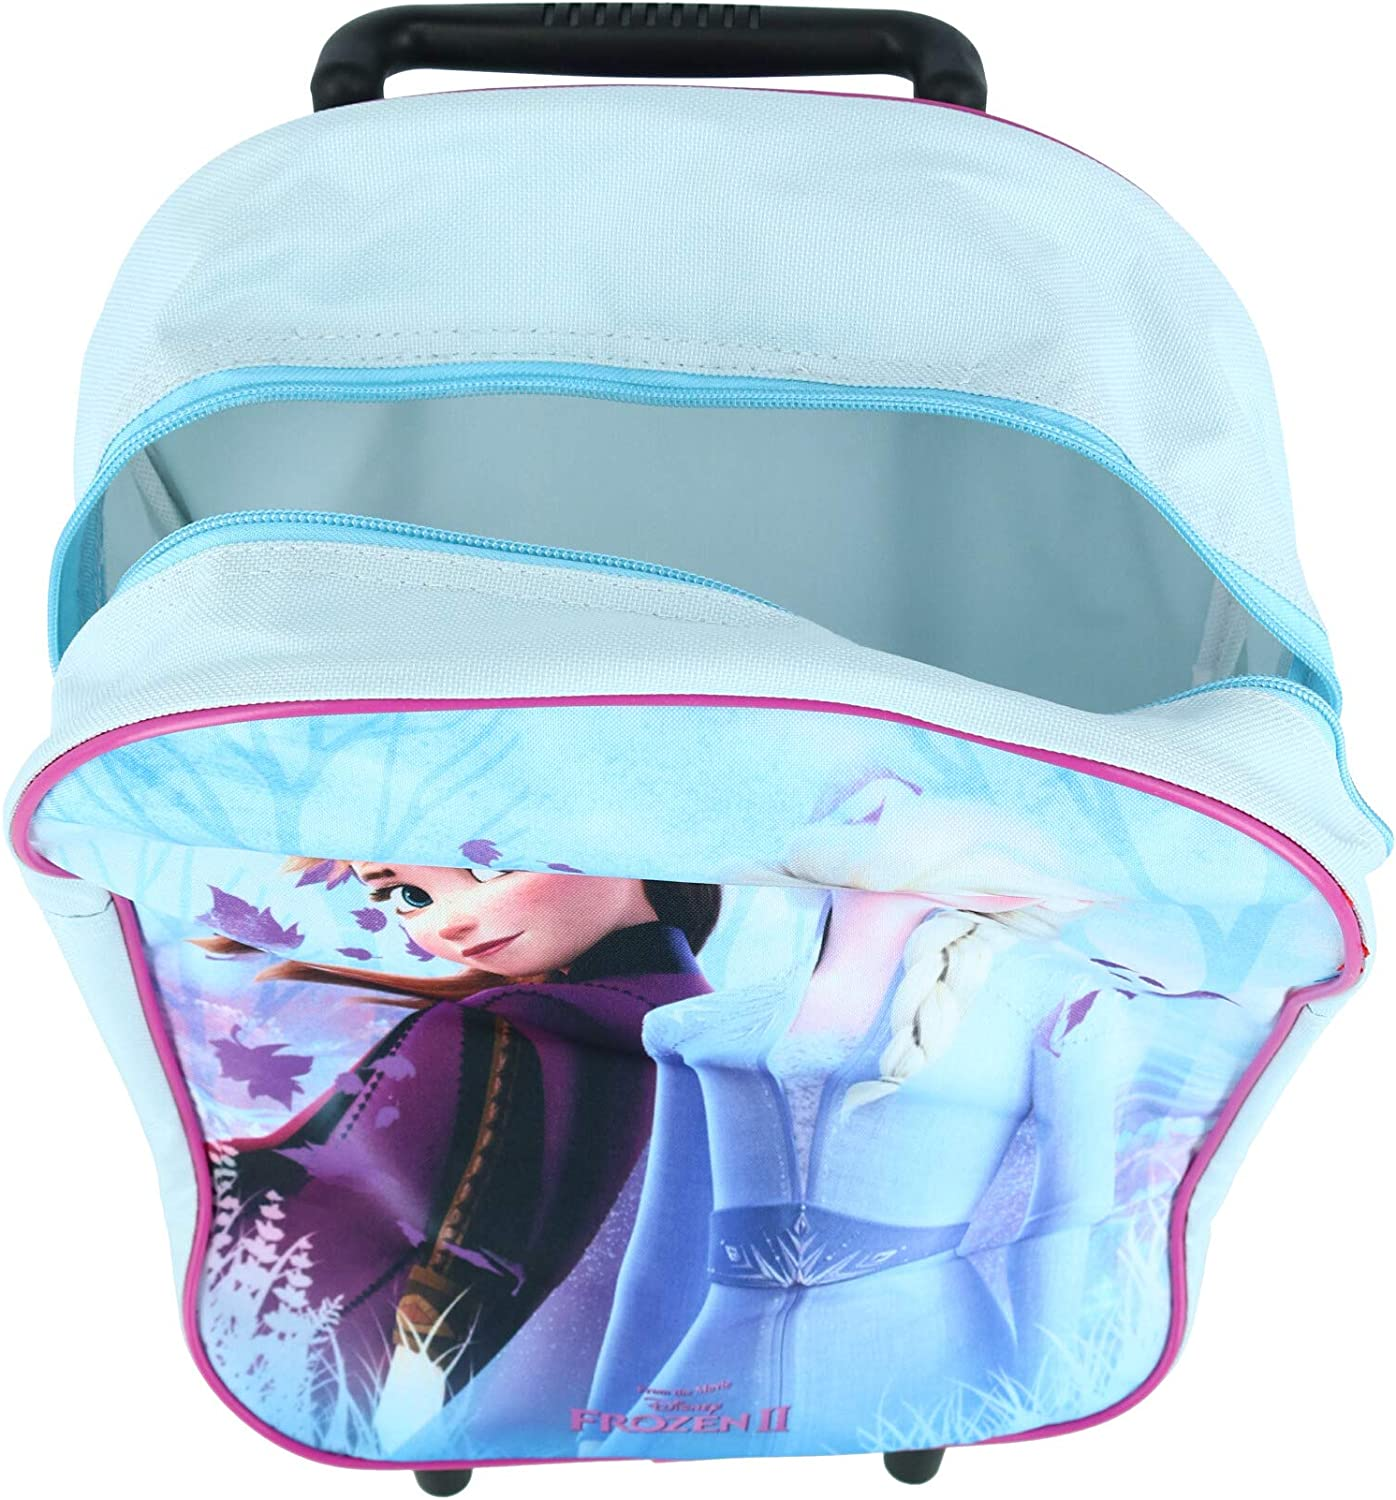 Elsa and Anna Magical Journey Disney Frozen II Trolley for Kids